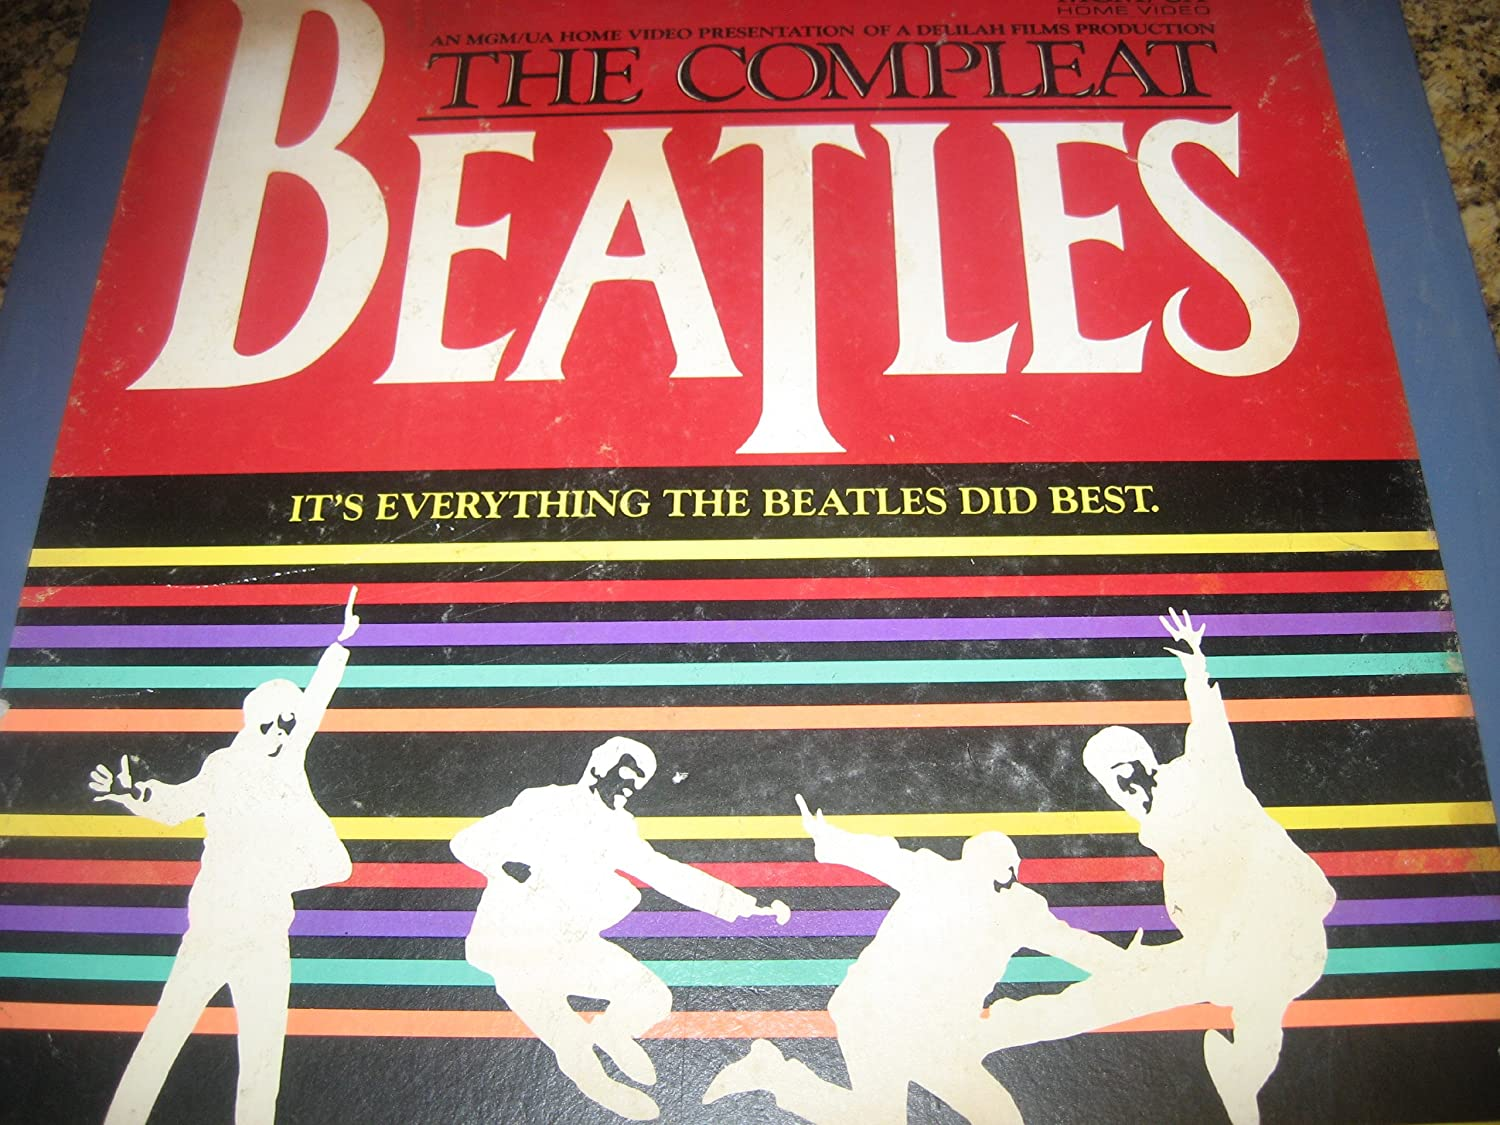 The Compleat Beatles [C.E.D. Electronic Disc System] PDF Free download